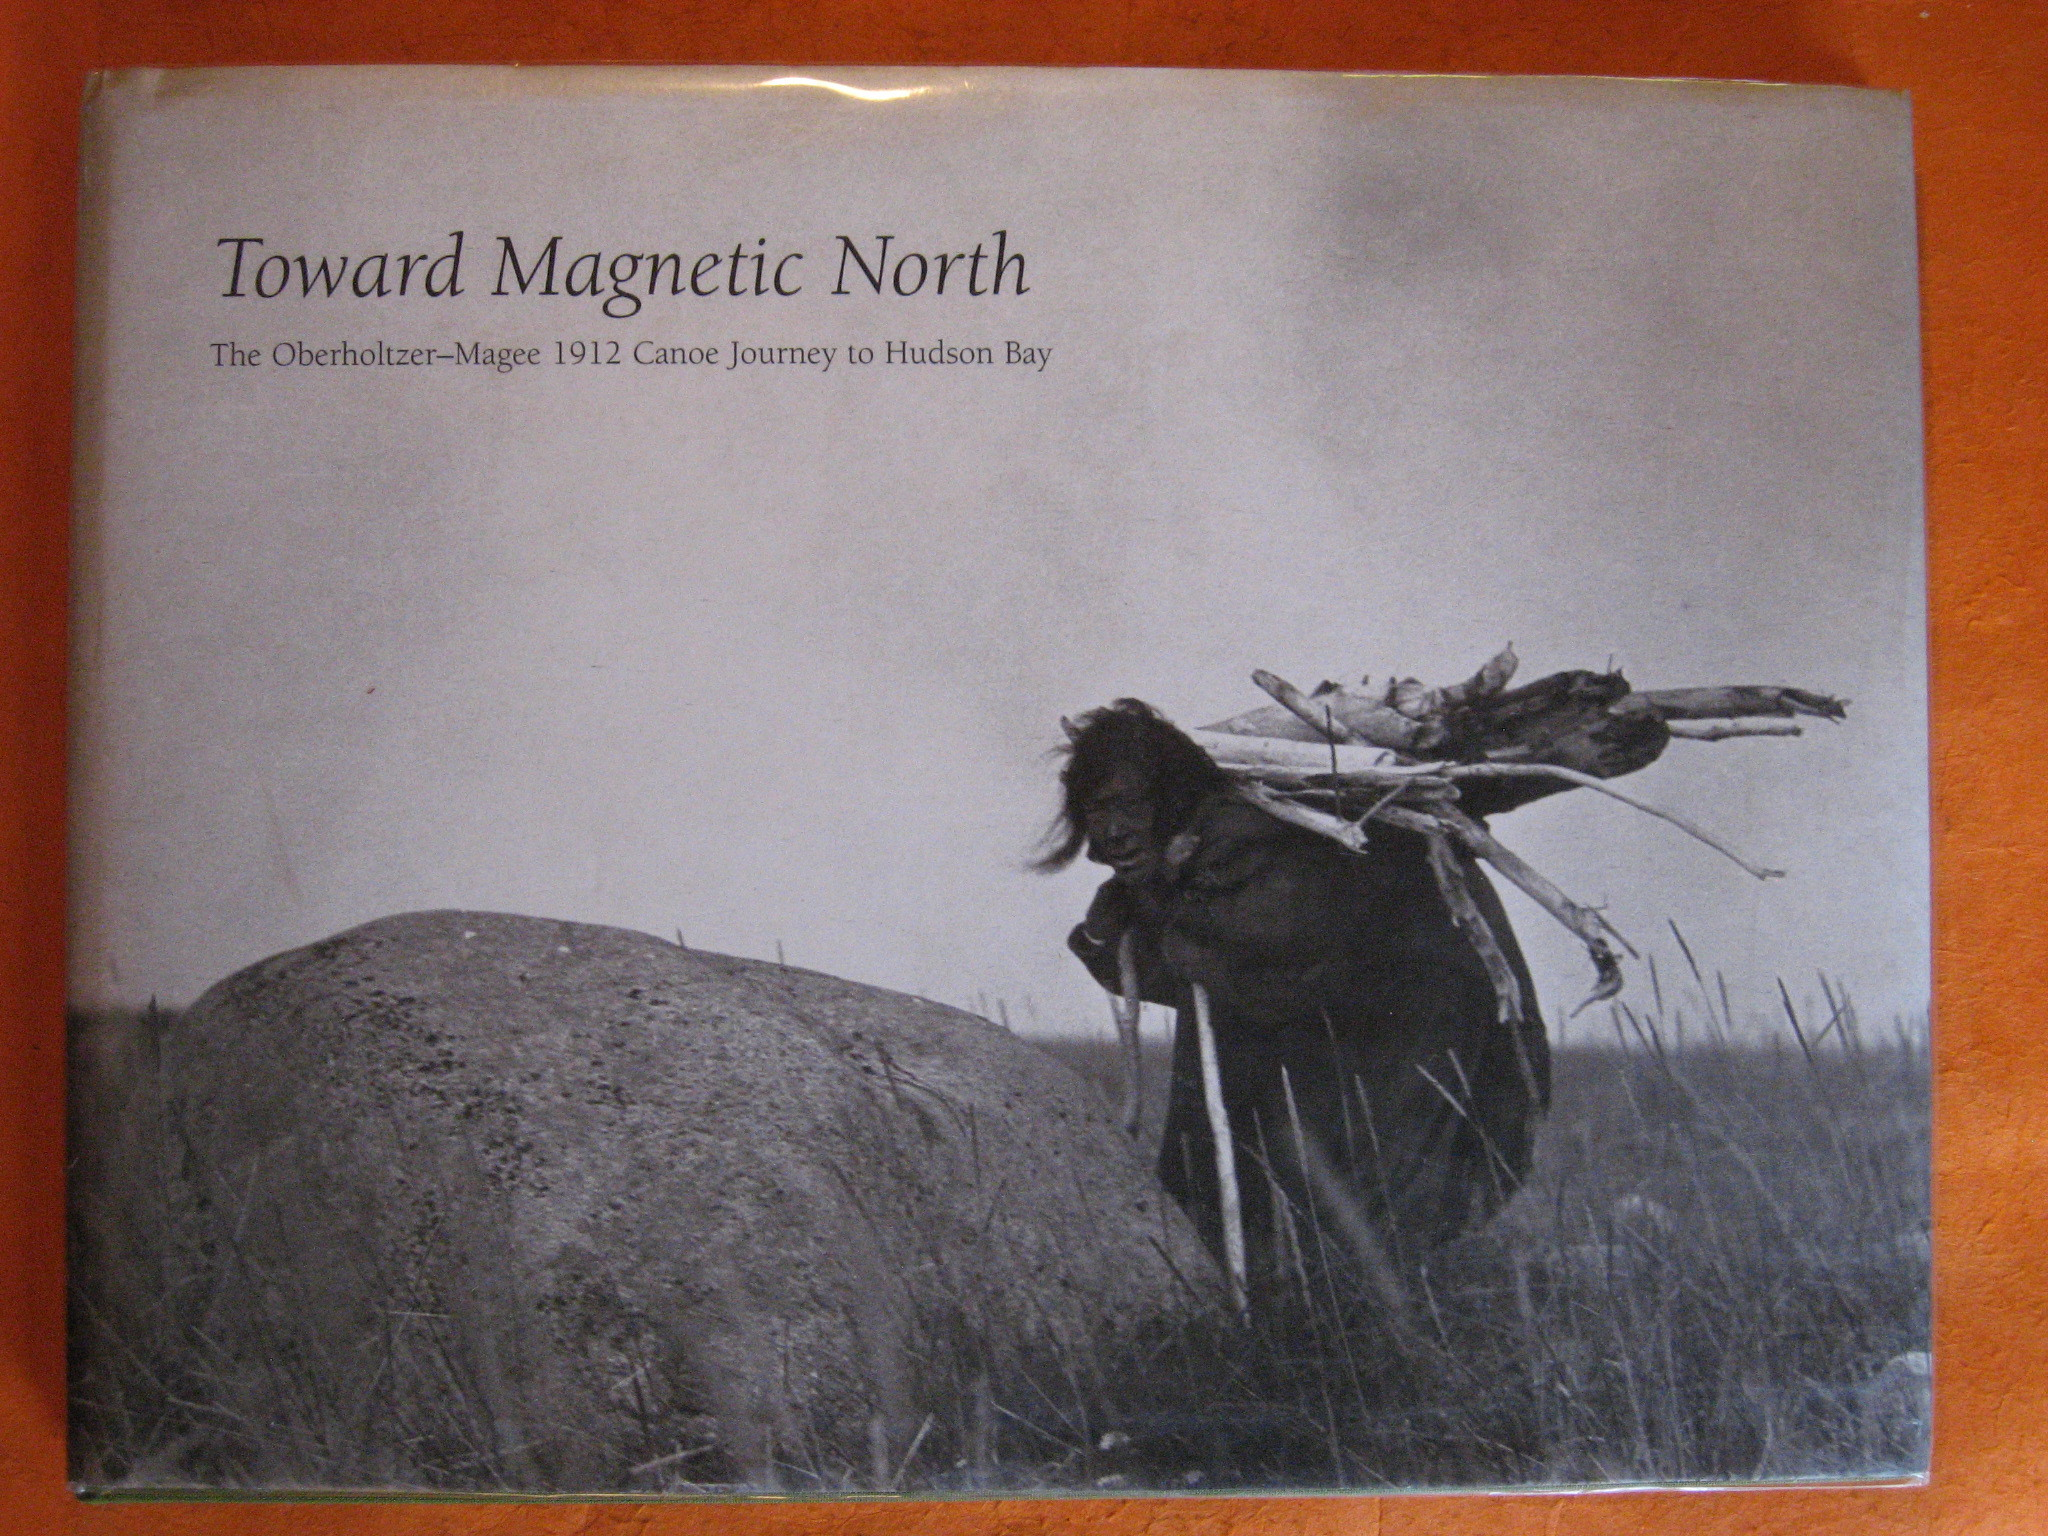 Toward Magnetic North: The Oberholtzer-Magee 1912 Canoe Journey to Hudson Bay, Oberholtzer, Ernest C.